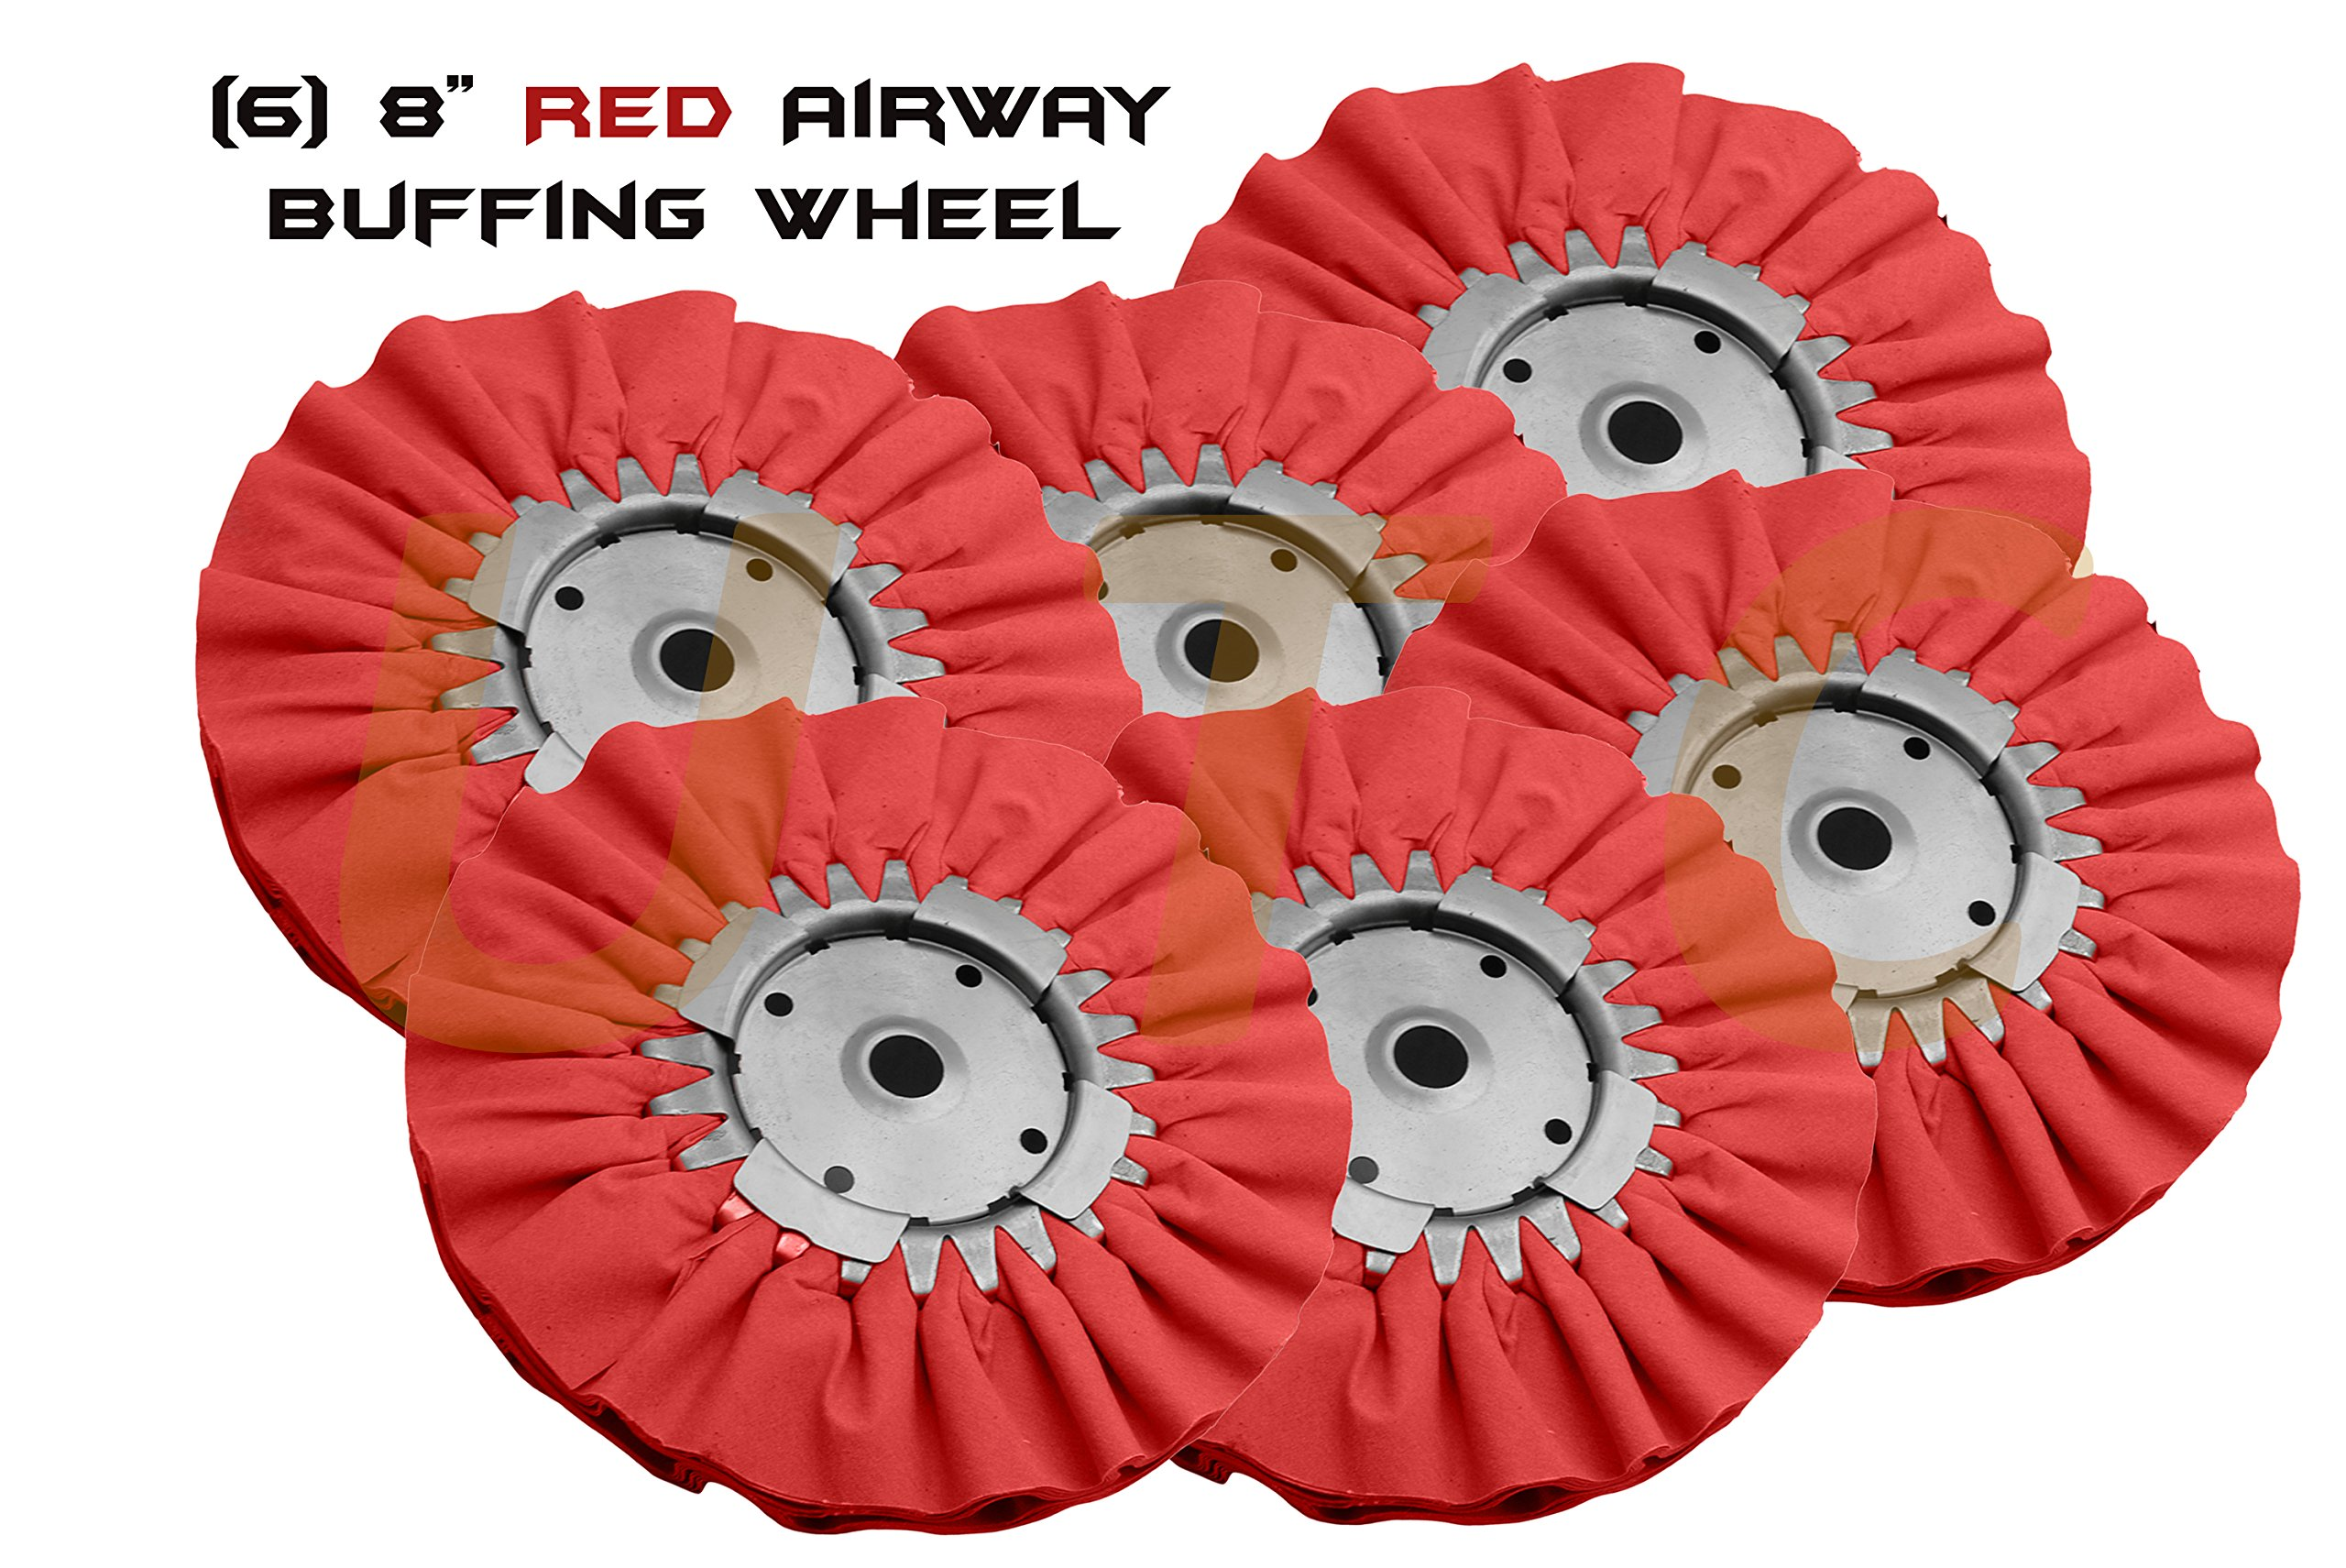 UTC (6) 8'' Red Airway Buffing Wheel for Polish Step of Aluminum Stainless Steel High Cut Abrasive Paint Sirwl Scratch